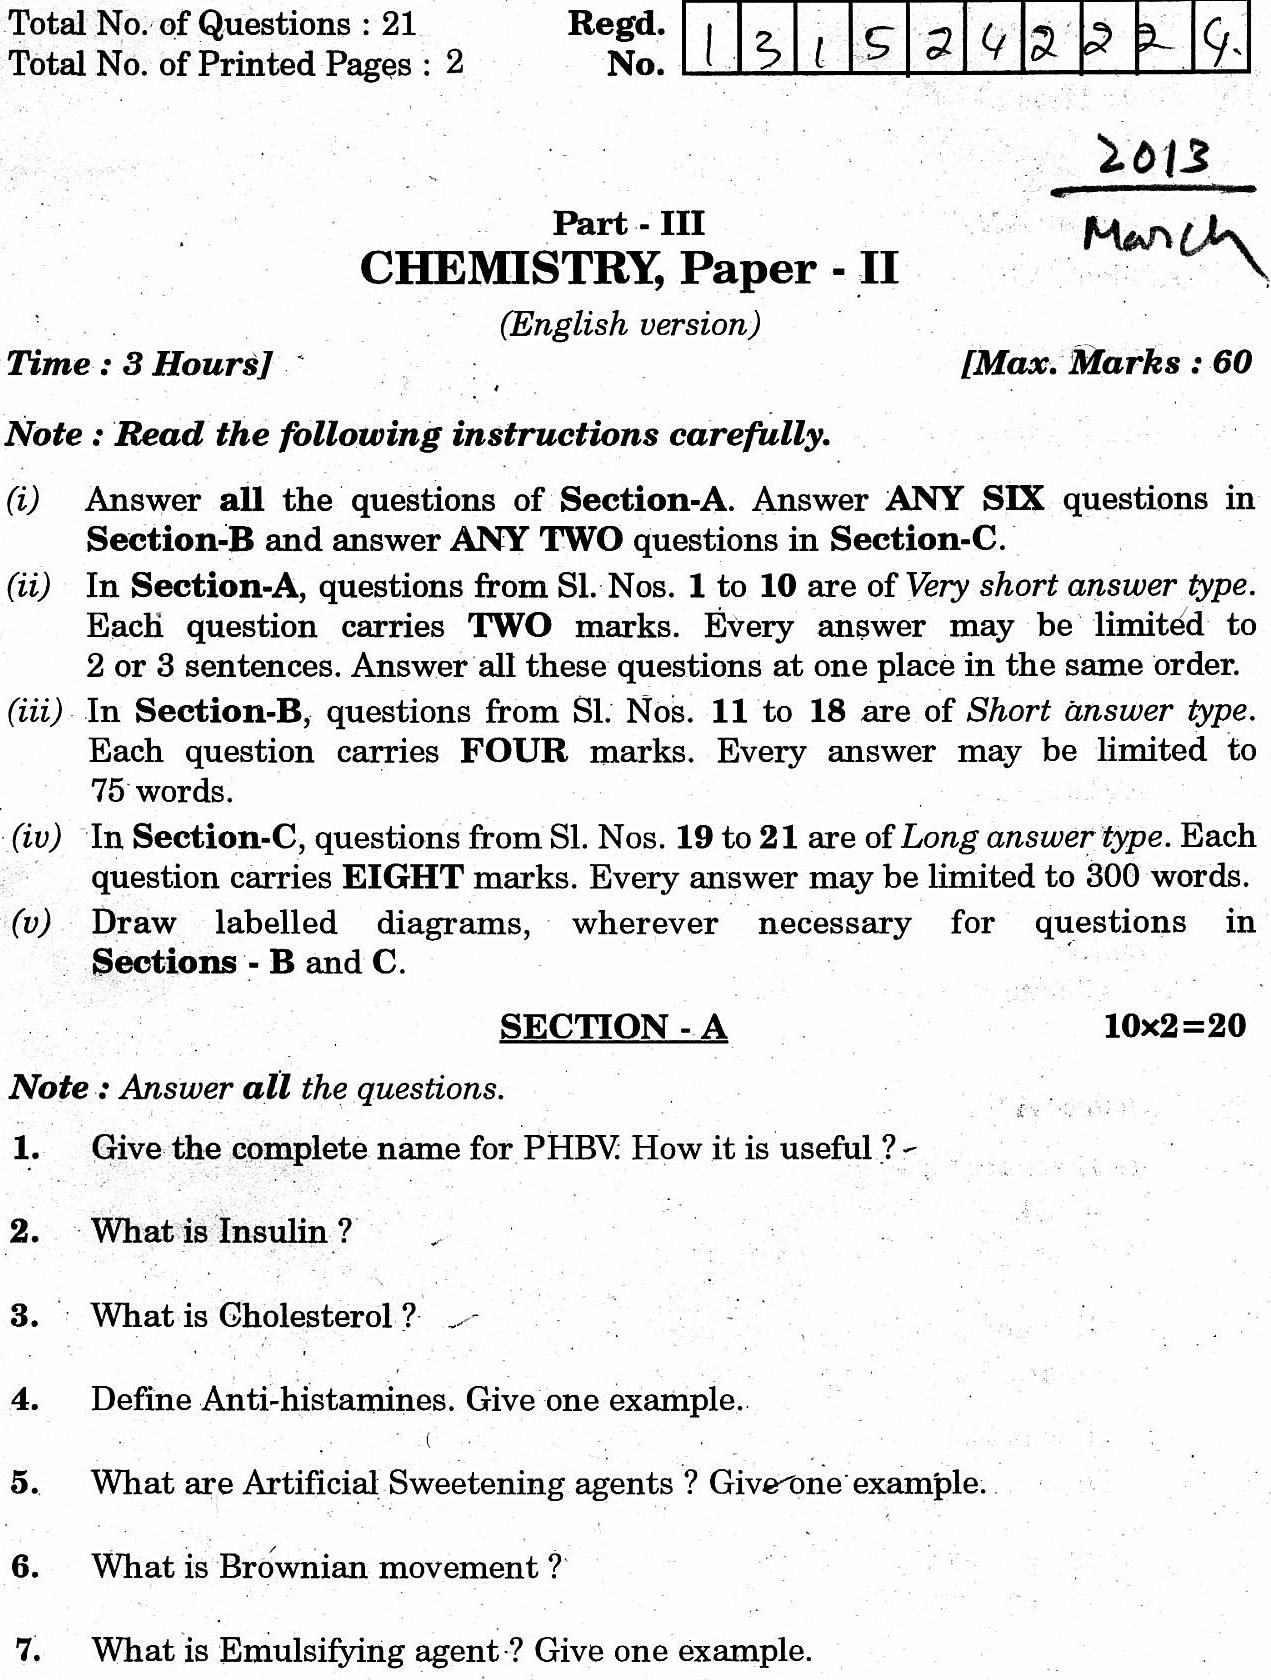 physical chemistry essay questions The five major branches of chemistry are organic, inorganic, analytical, physical,  and biochemistry these divide into many sub-branches.